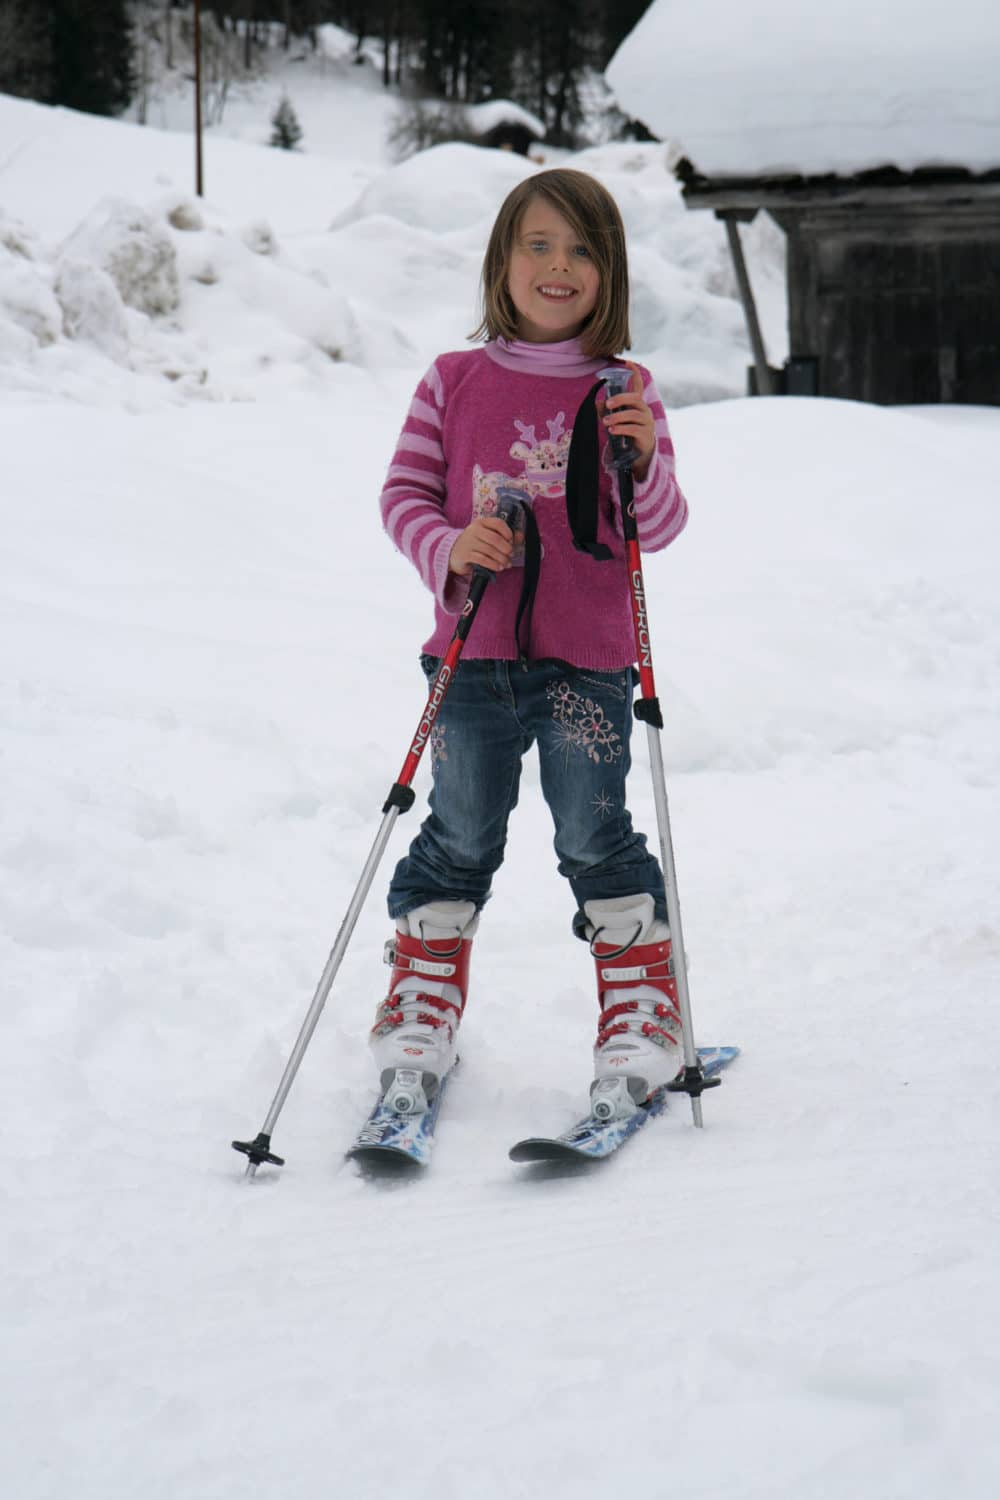 A young child skiing